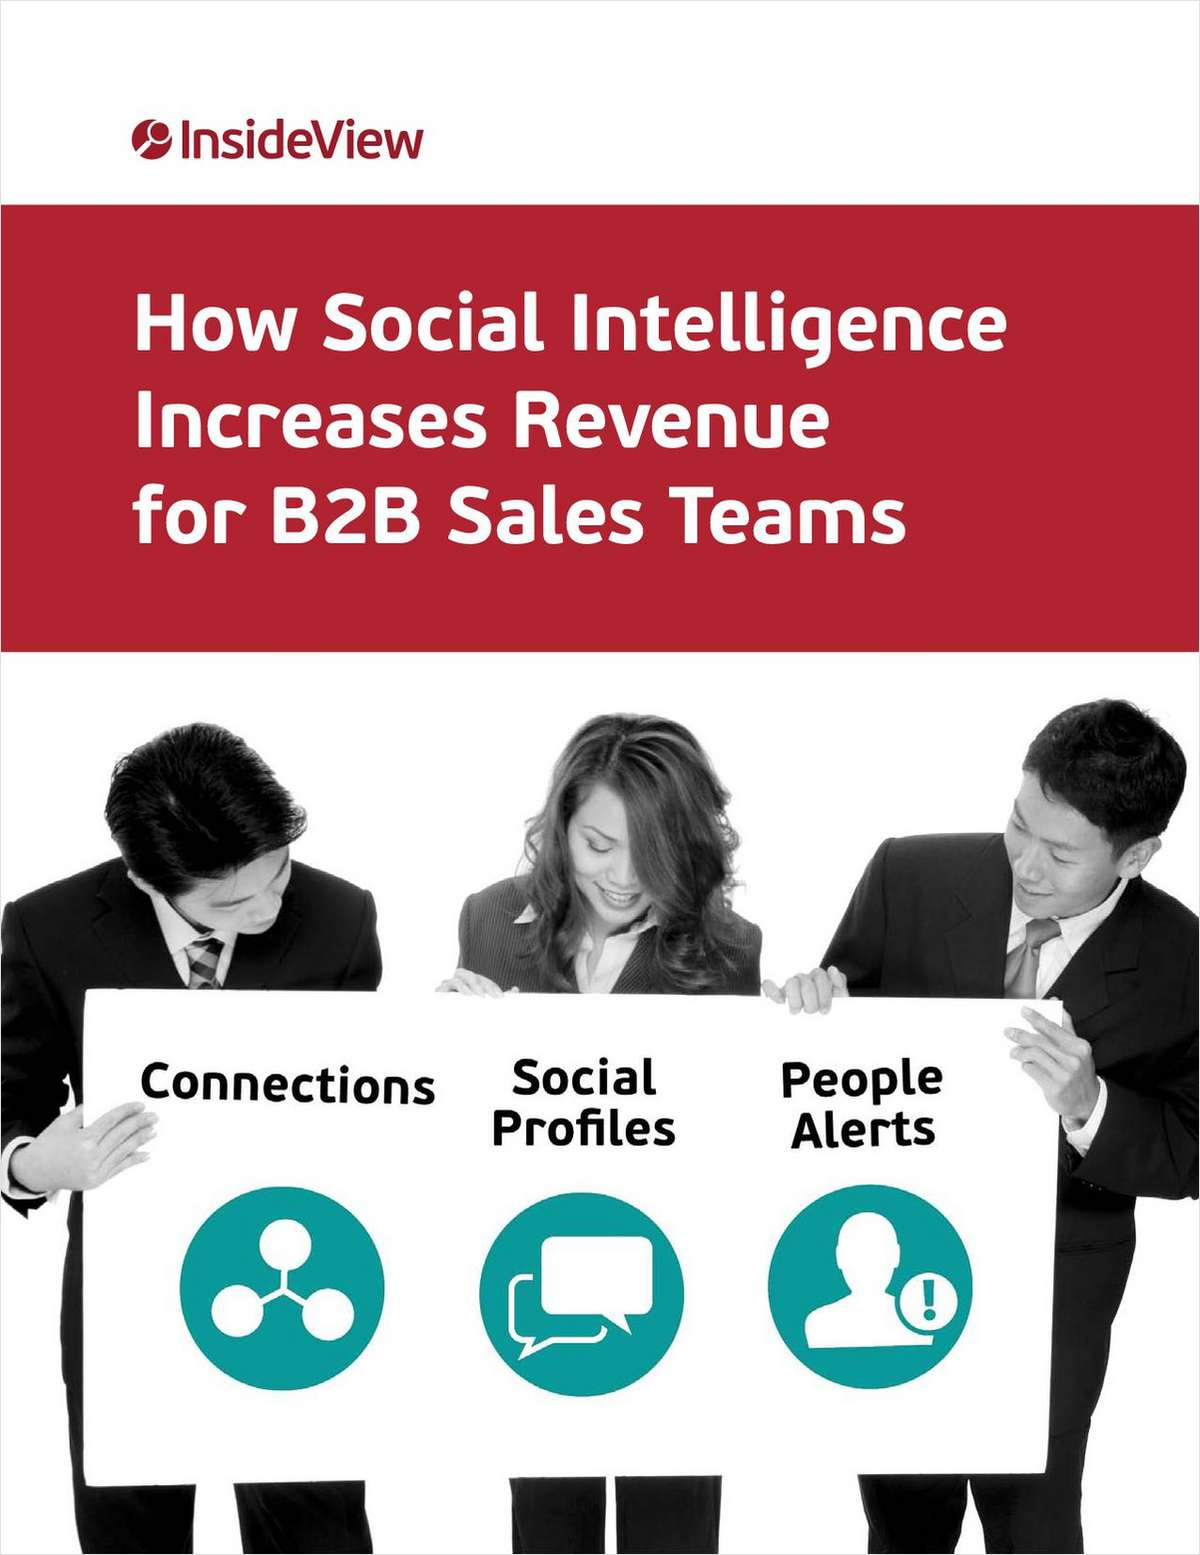 How Social Intelligence Increases Revenue for B2B Sales Teams